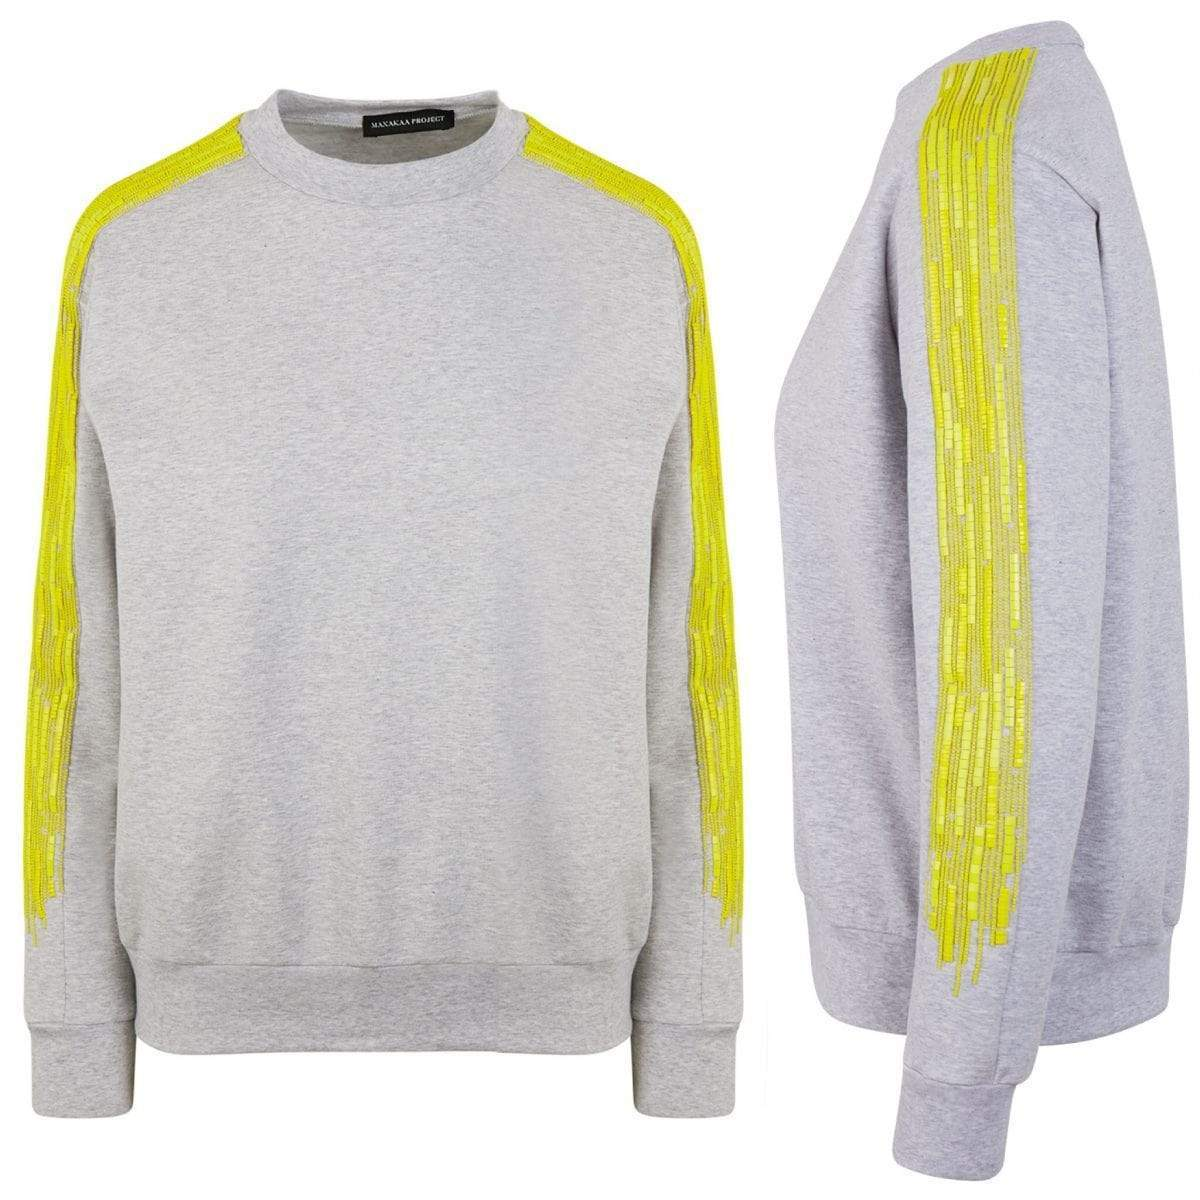 Manakaa Project UG sweaters Sweater in Organic Cotton and MIYUKI beads. sustainable fashion ethical fashion